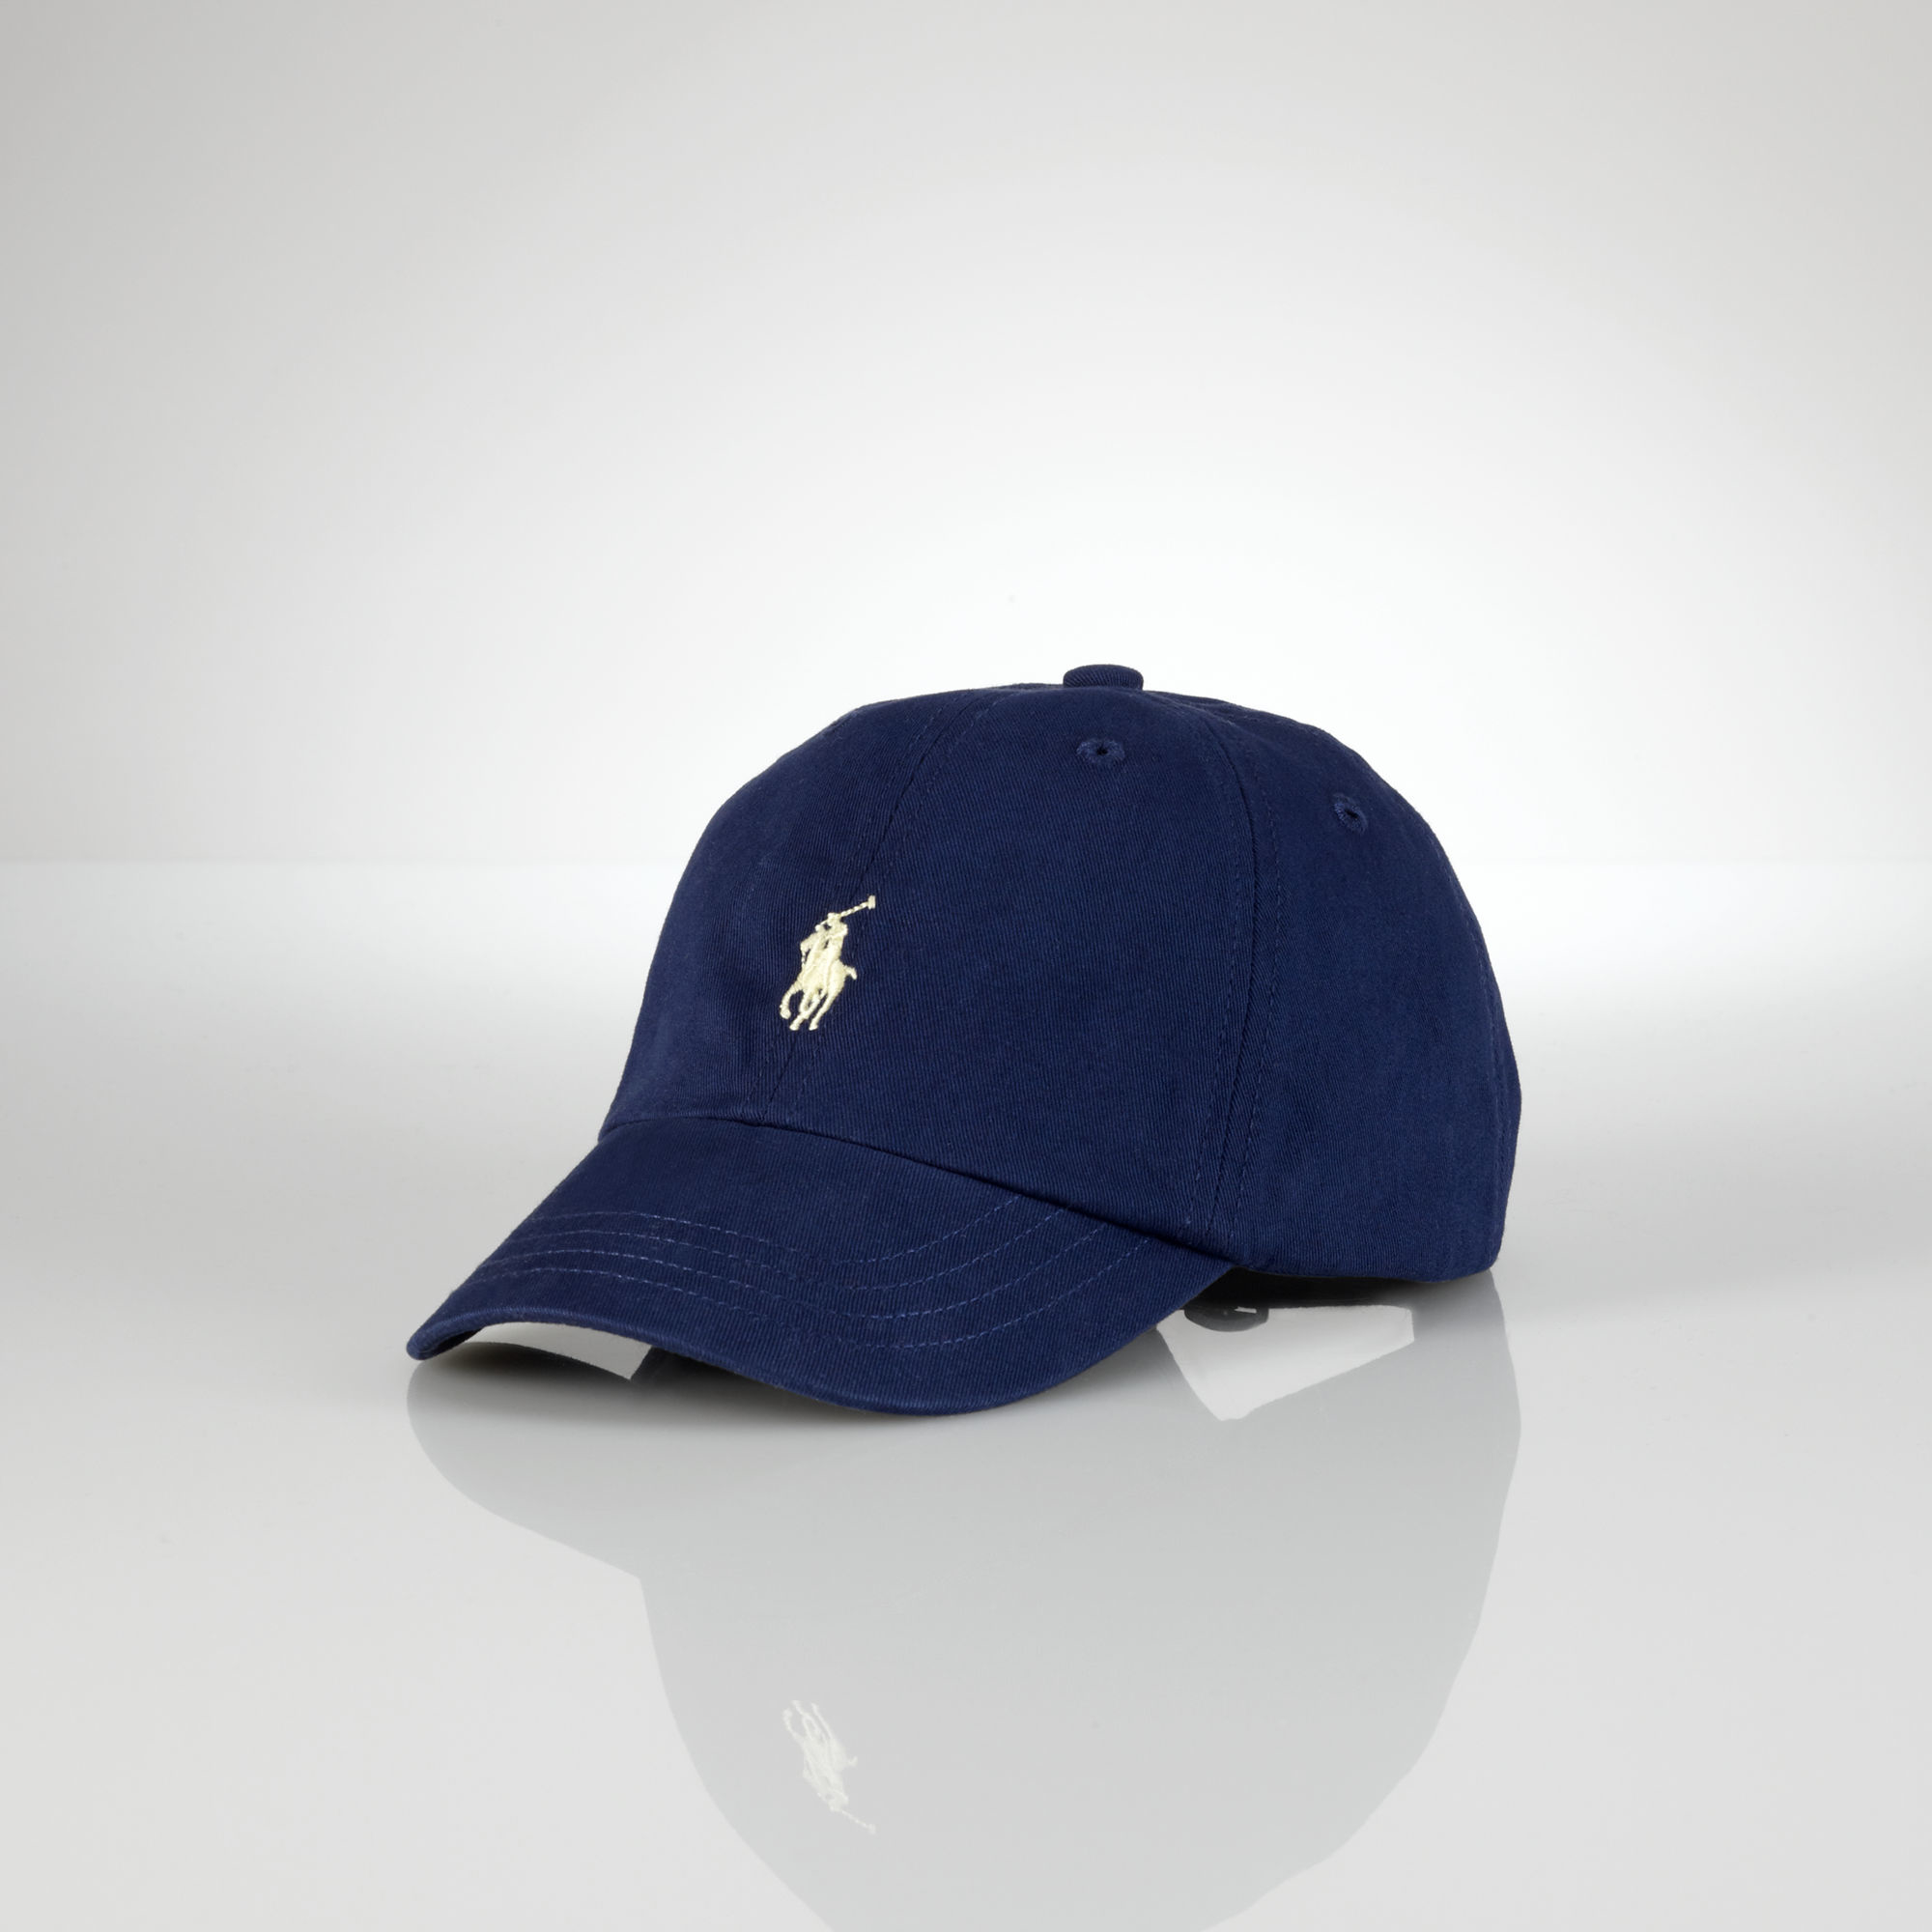 Ralph Lauren Classic Pony Baseball Cap in Blue for Men - Lyst ea933a25750